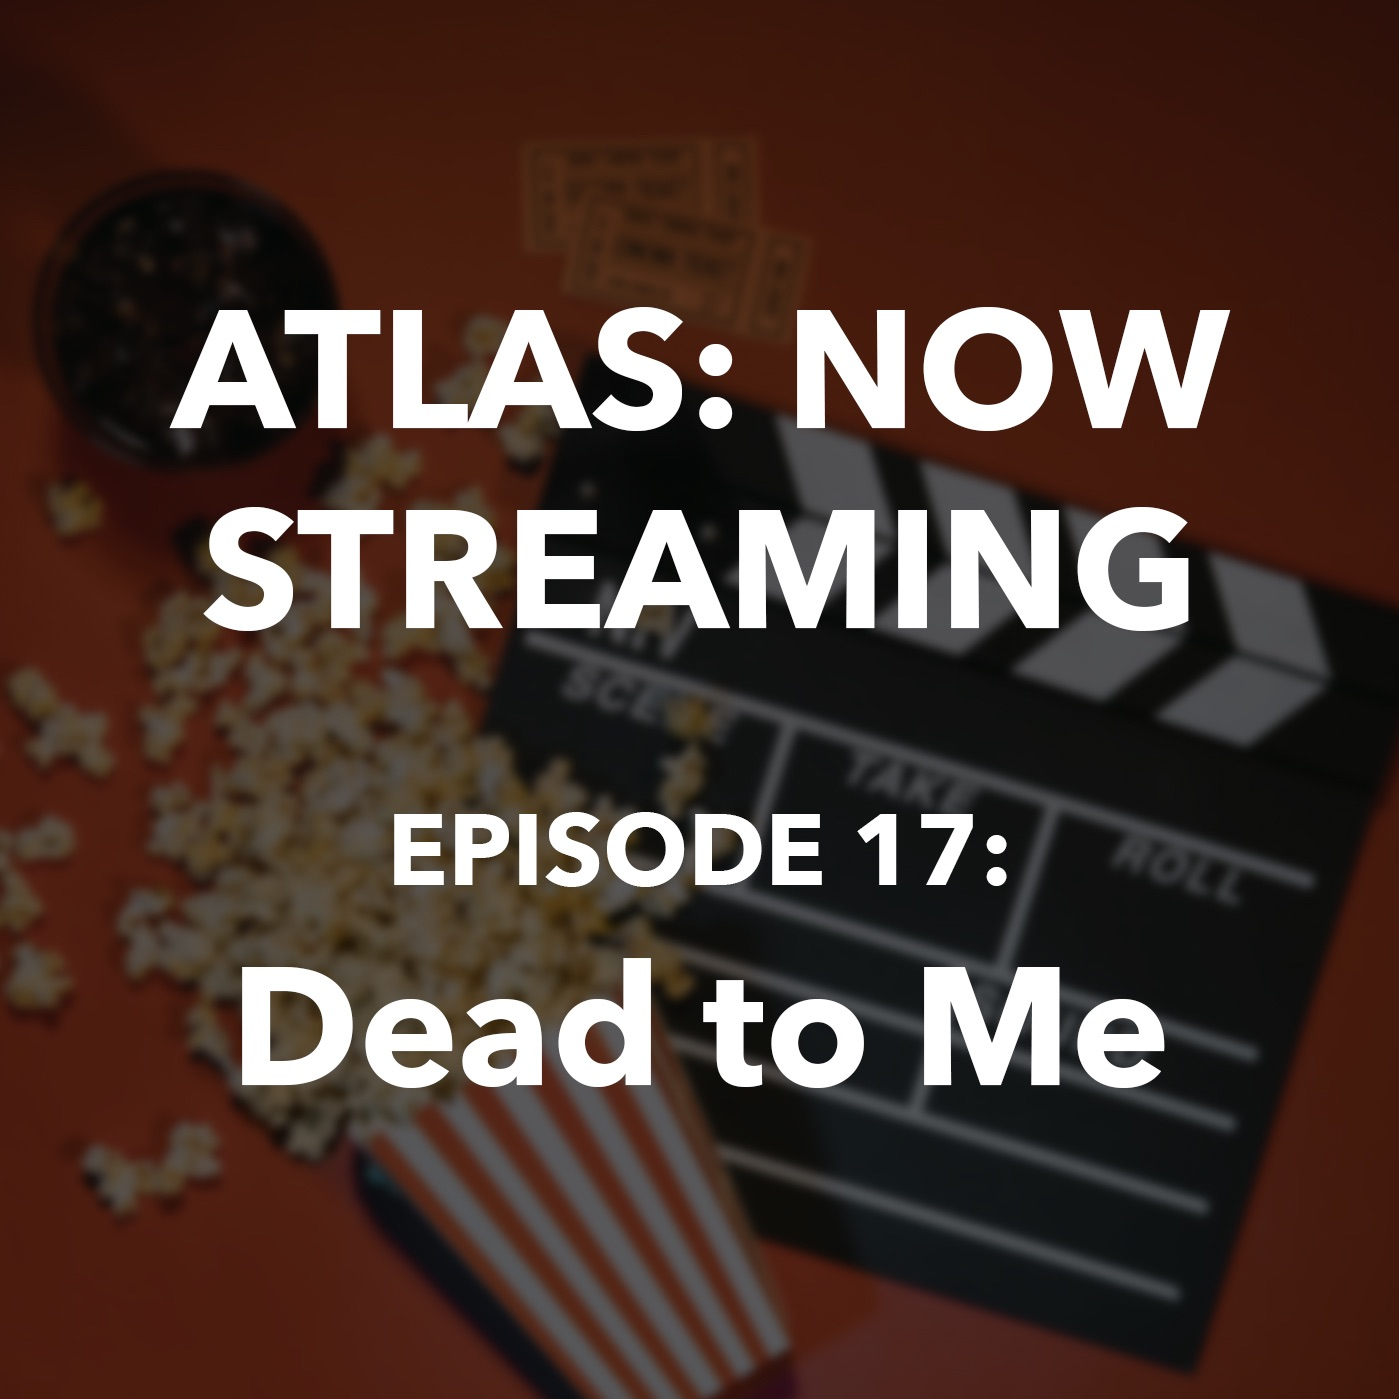 Atlas: Now Streaming Episode 17 - Dead to Me